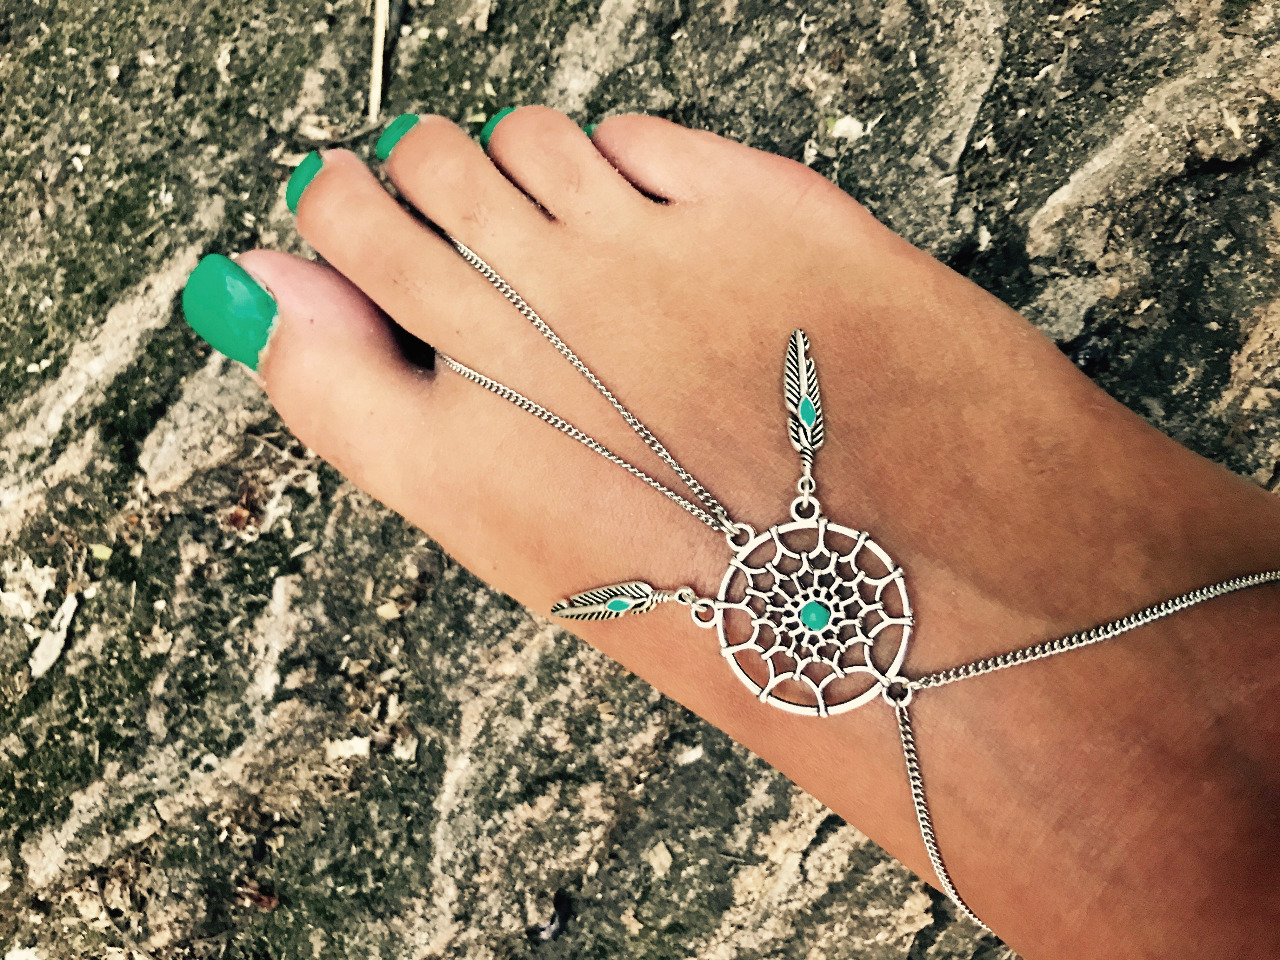 Bijou de pied en acier inoxydable et attrape-rêve-Foot jewel with dream catcher